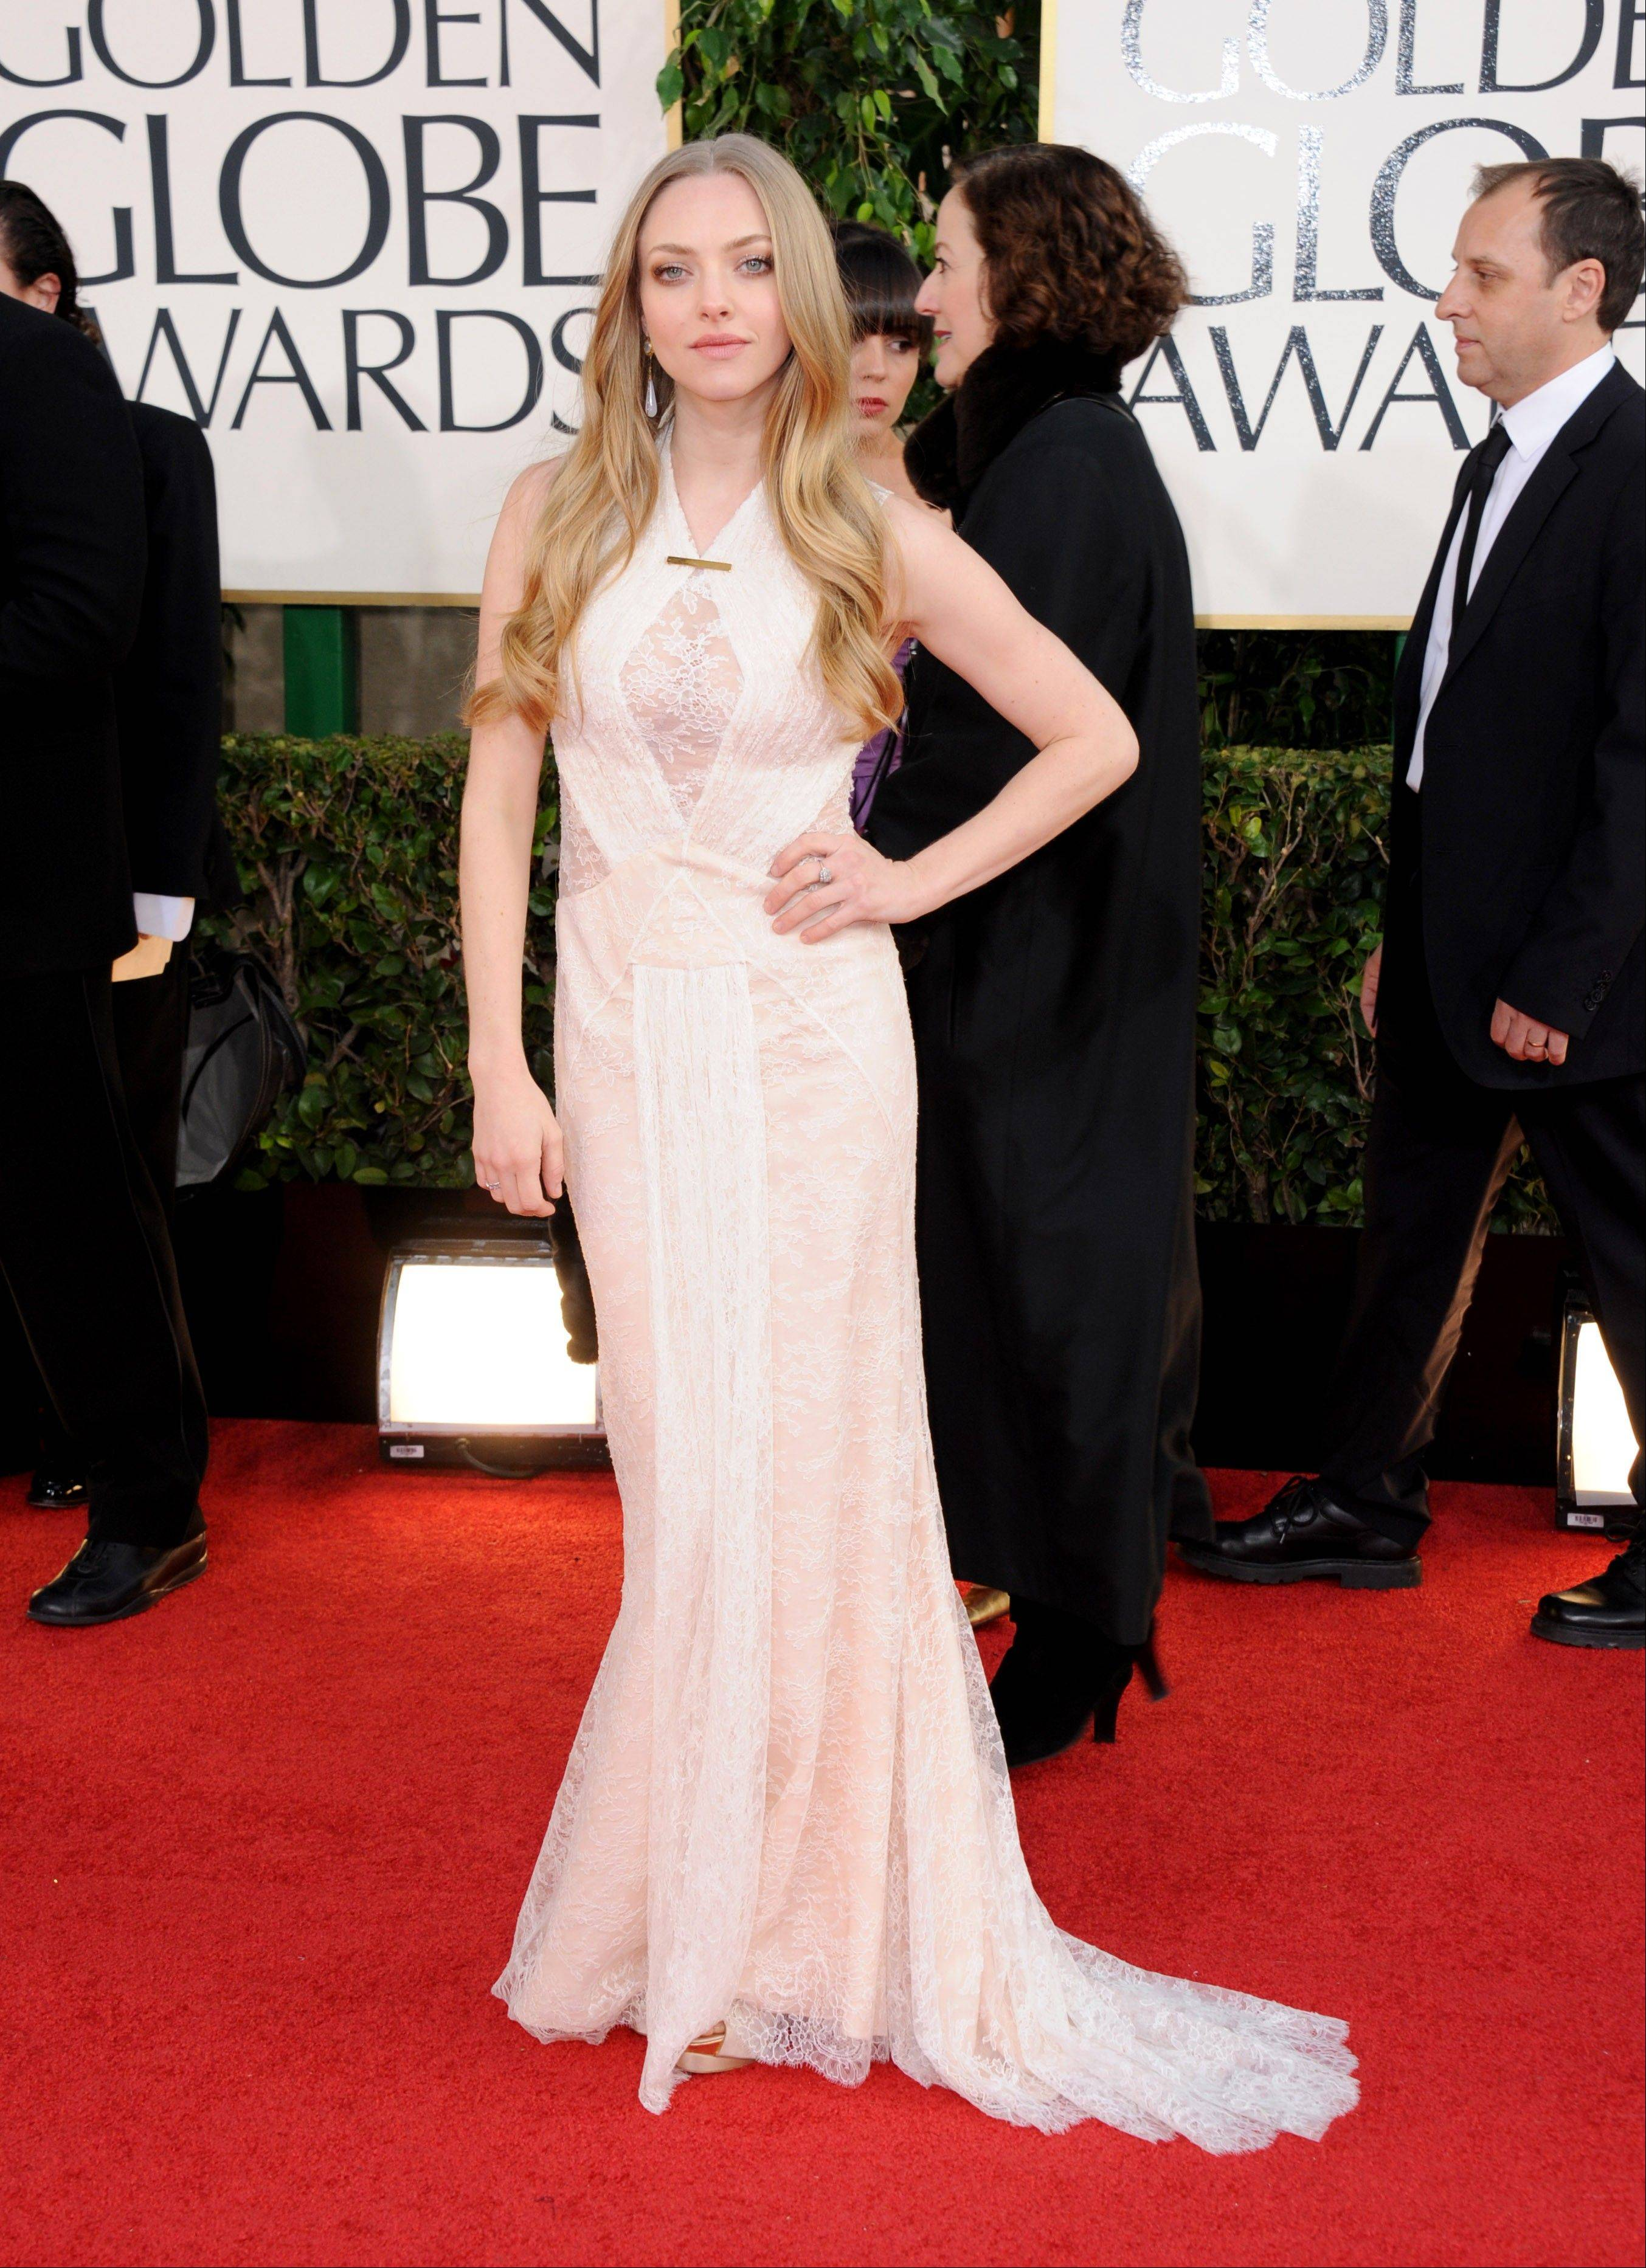 Actress Amanda Seyfried arrives at the 70th Annual Golden Globe Awards at the Beverly Hilton Hotel on Sunday Jan. 13, 2013, in Beverly Hills, Calif.